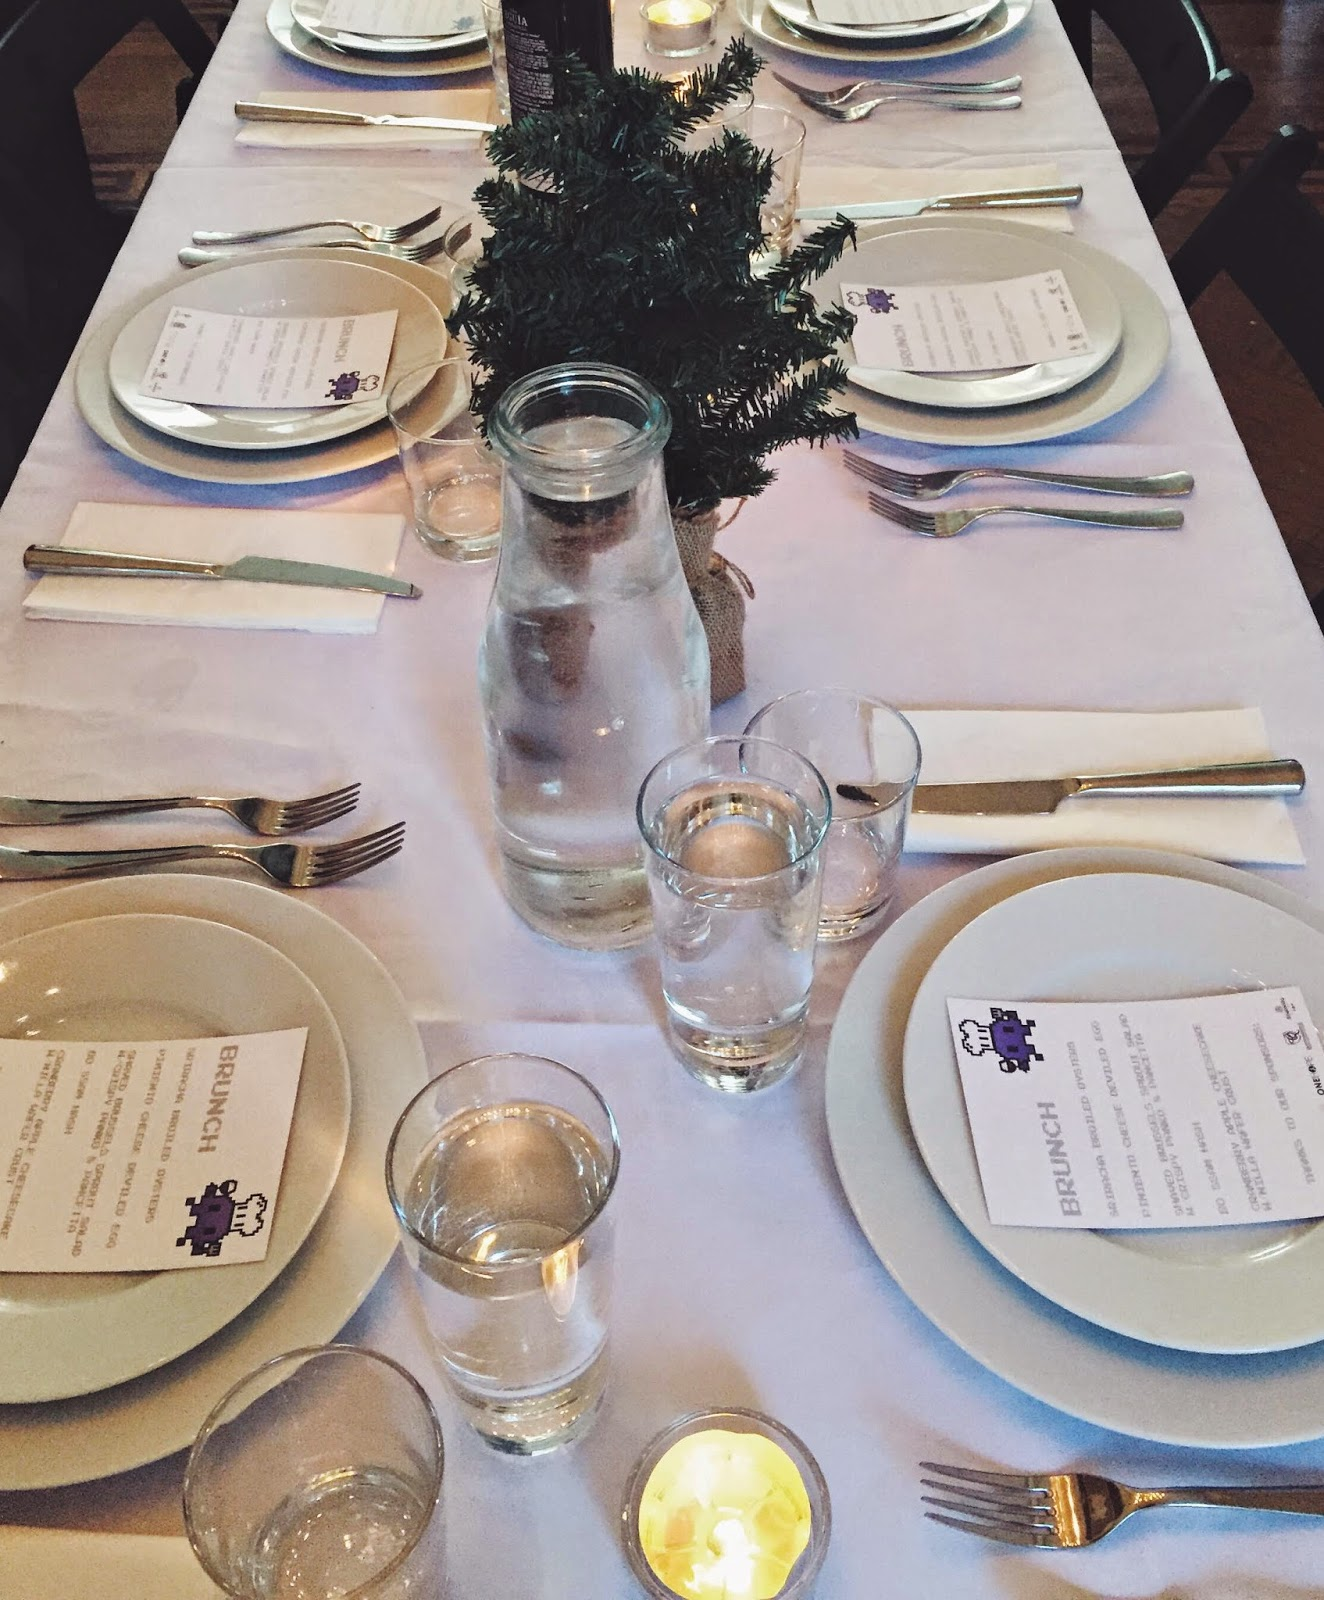 Review of Place Invaders, NYC's Secret Supper Club, brooklyn brownstone